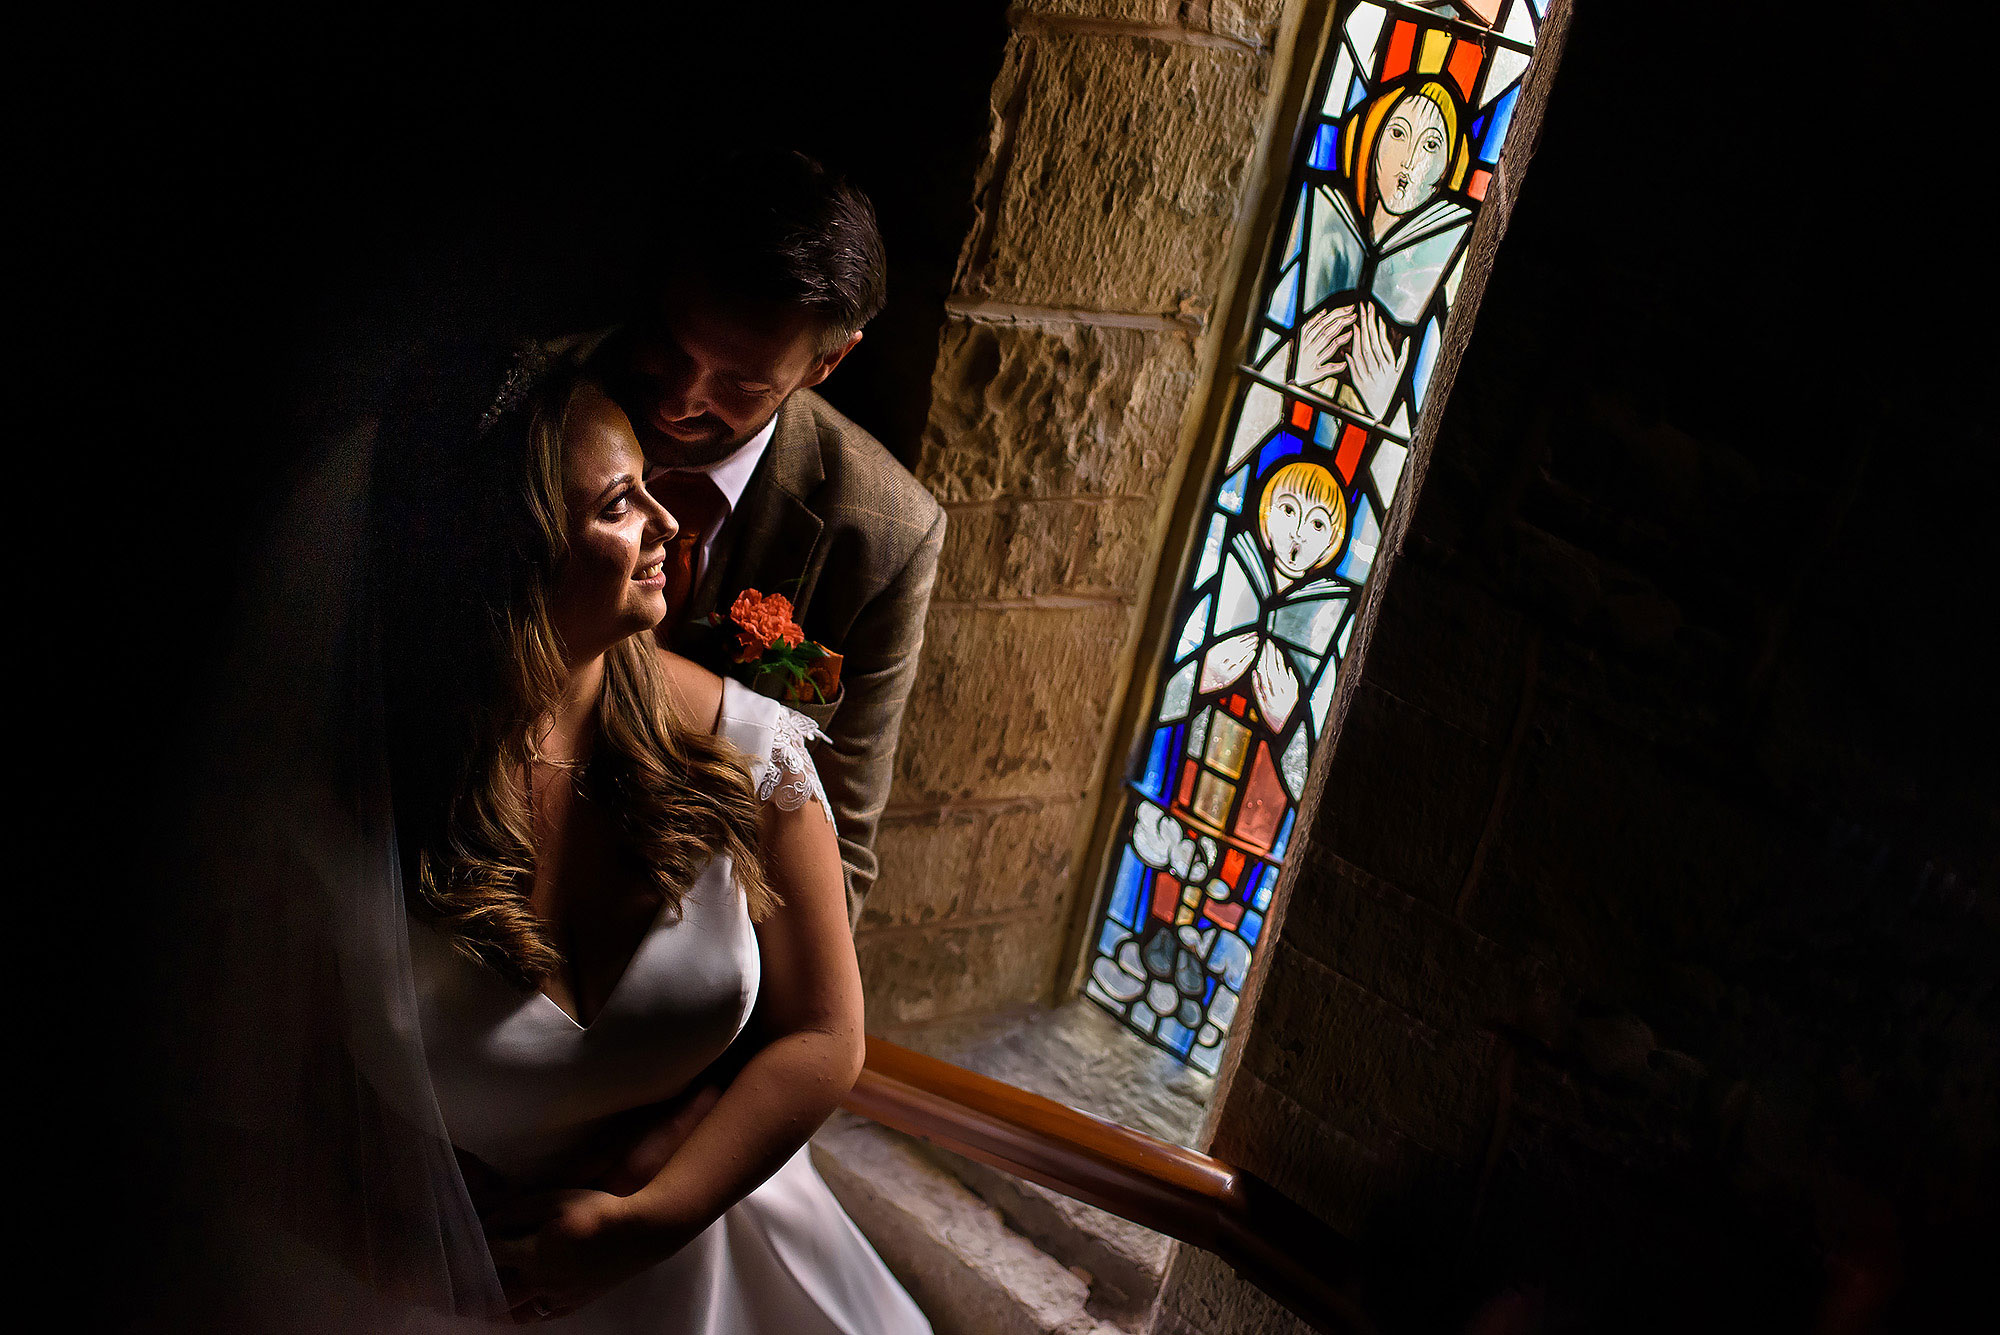 Groom holding bride in his arms close to stained glass window in beautiful light at St James the Less | Wellbeing Farm wedding photographs by Toni Darcy Photography